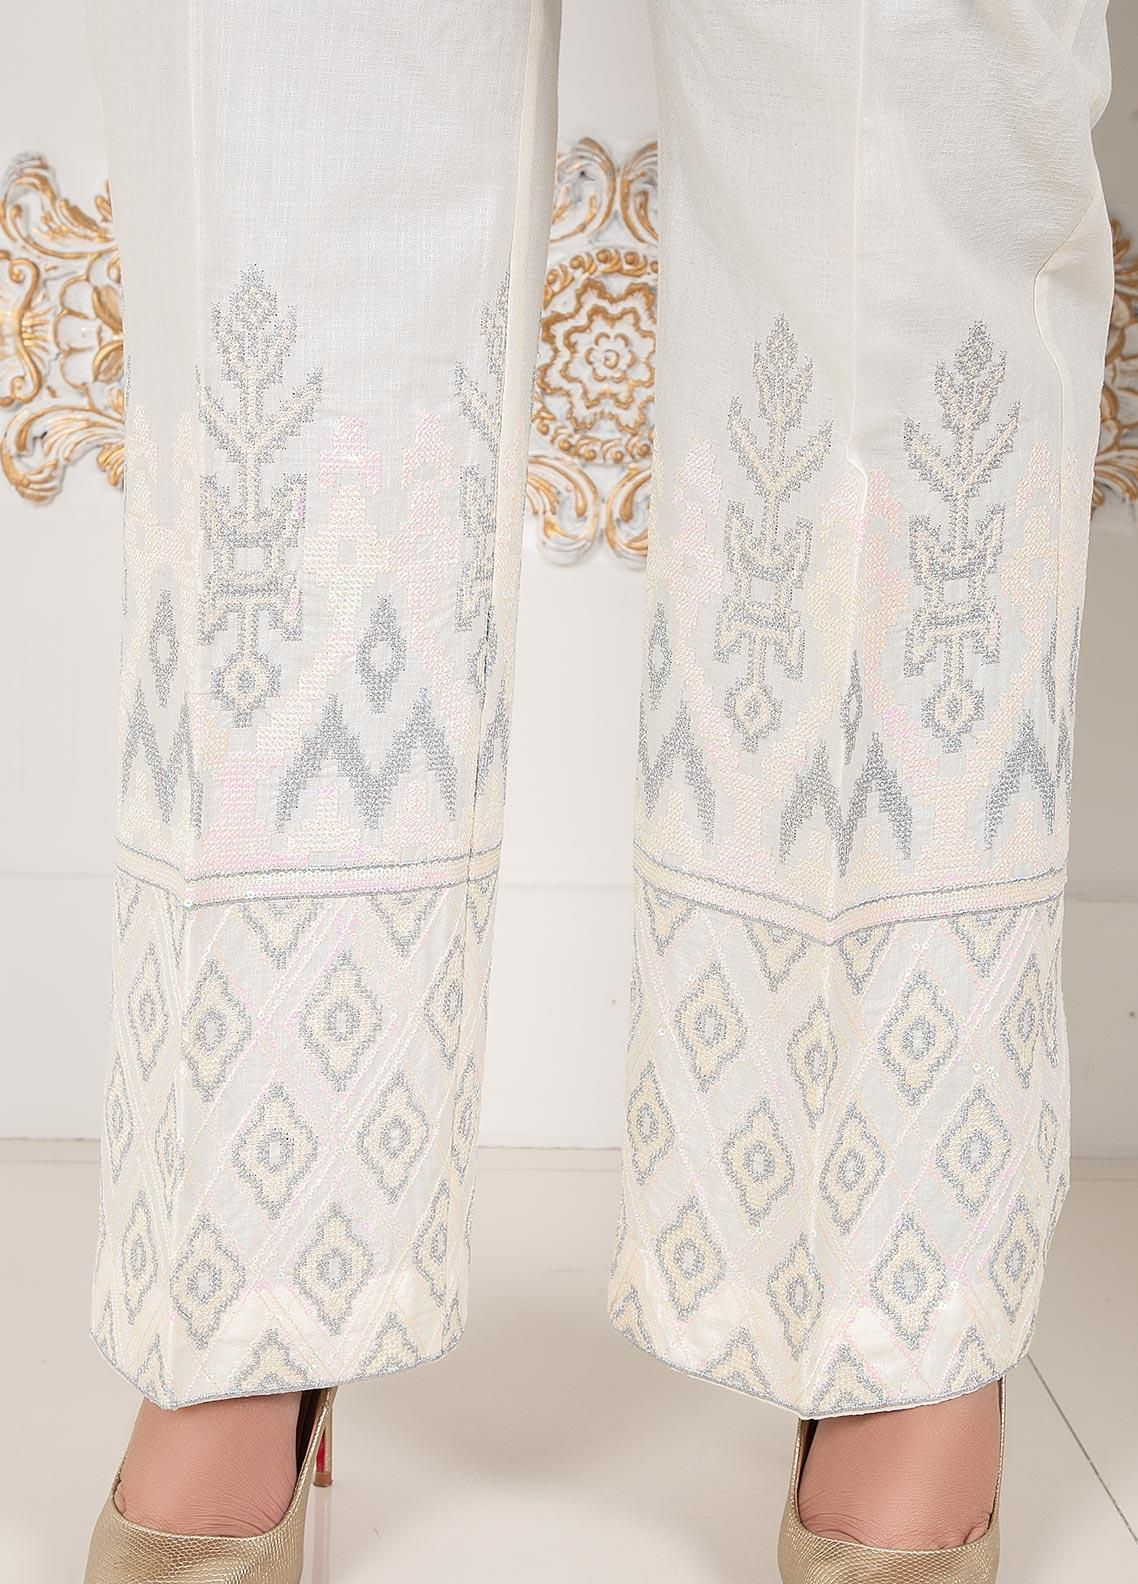 Lush Embroidered Cotton Stitched Trousers Boot Cut White